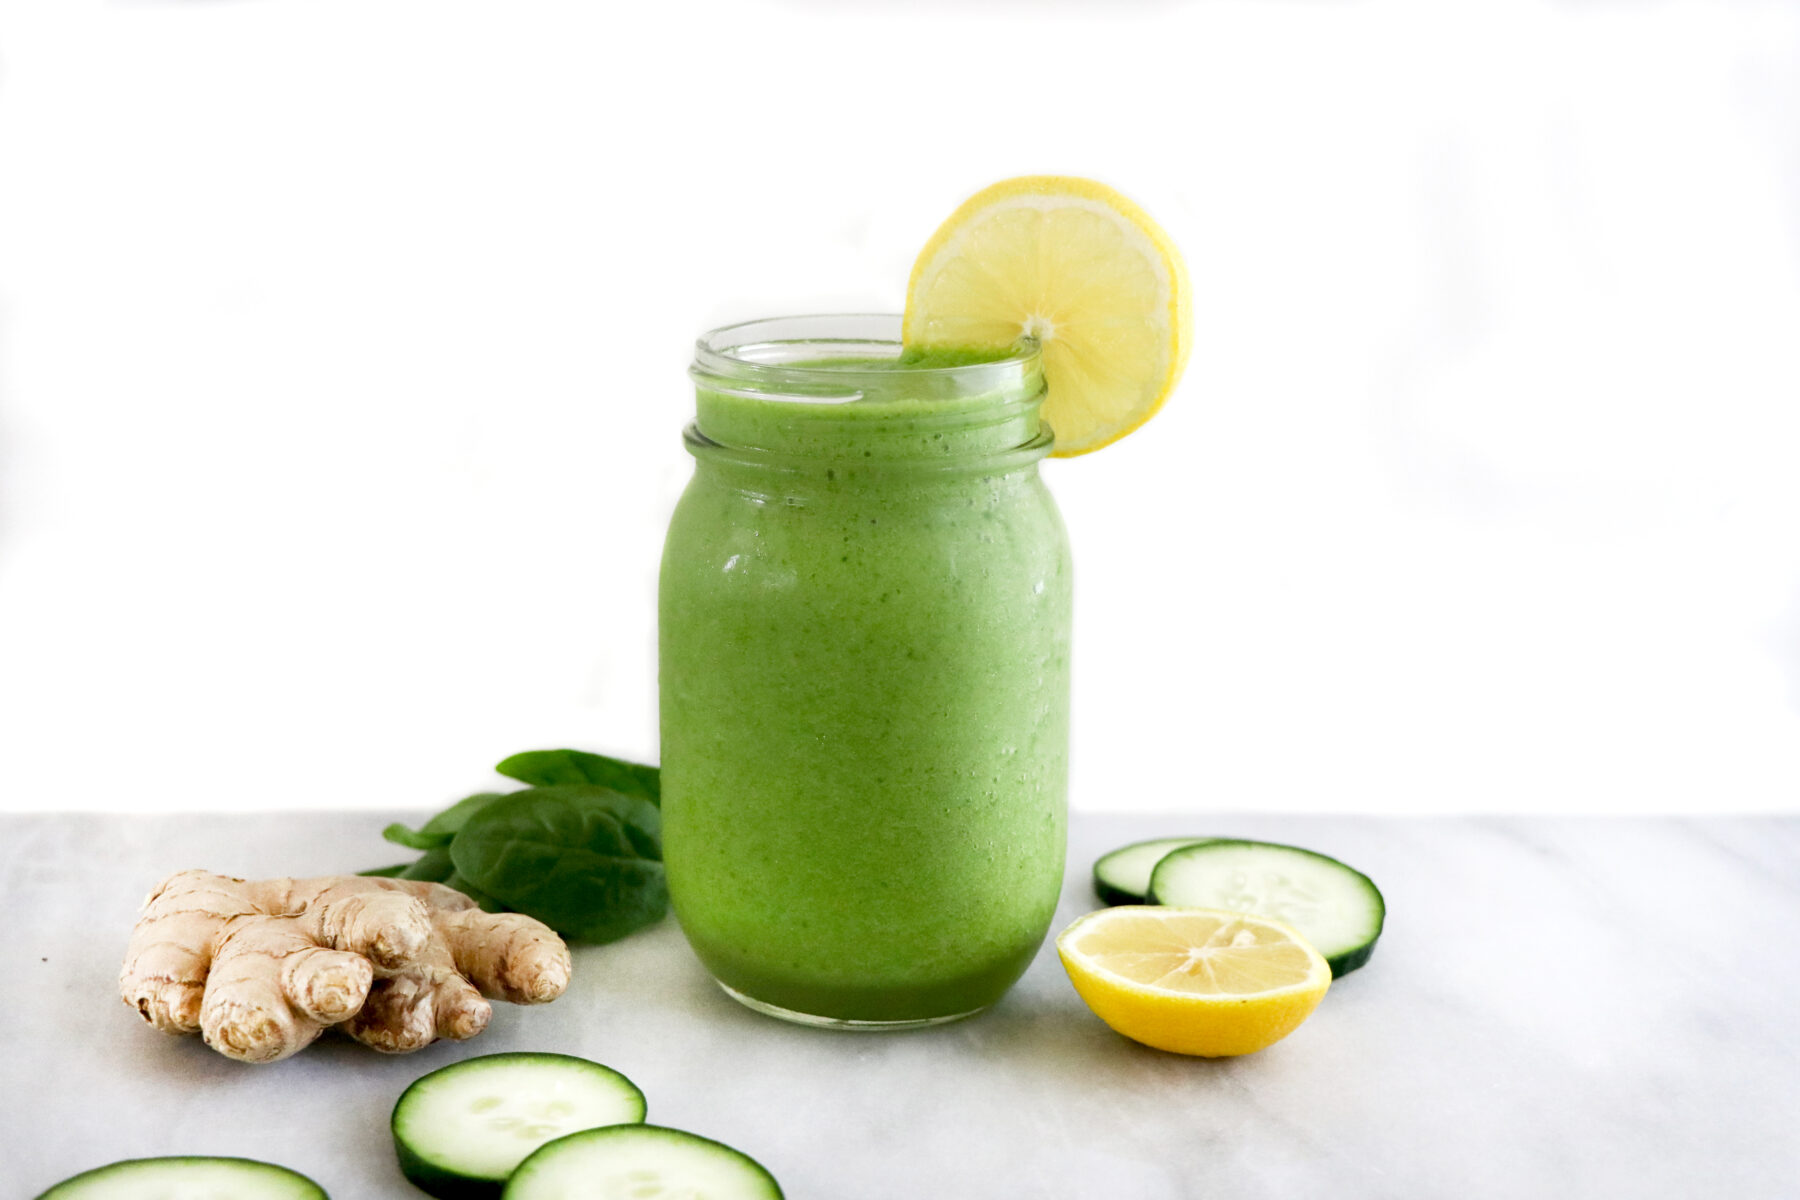 Mason jar filled with green smoothie and lemon slice on top. Surrounded by ginger, cucumber, spinach and citrus.